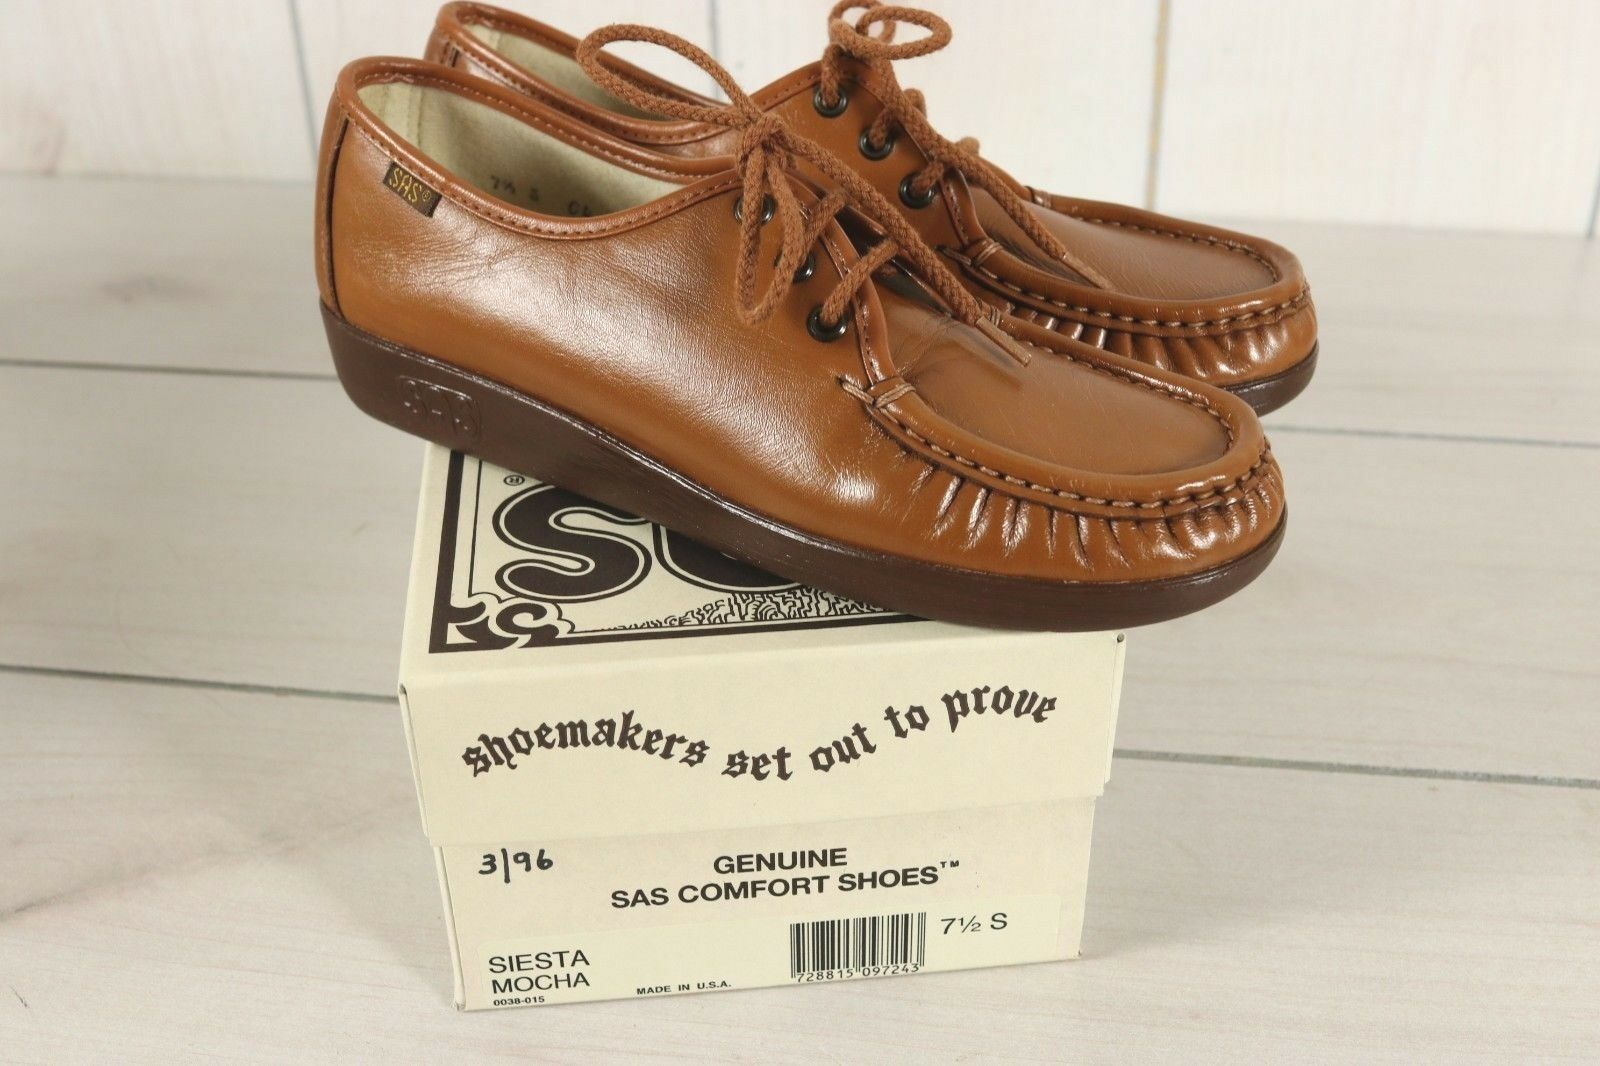 SAS Siesta femmes Sz 7-1 2 S N marron Leather Walking Oxford chaussures New In Box USA